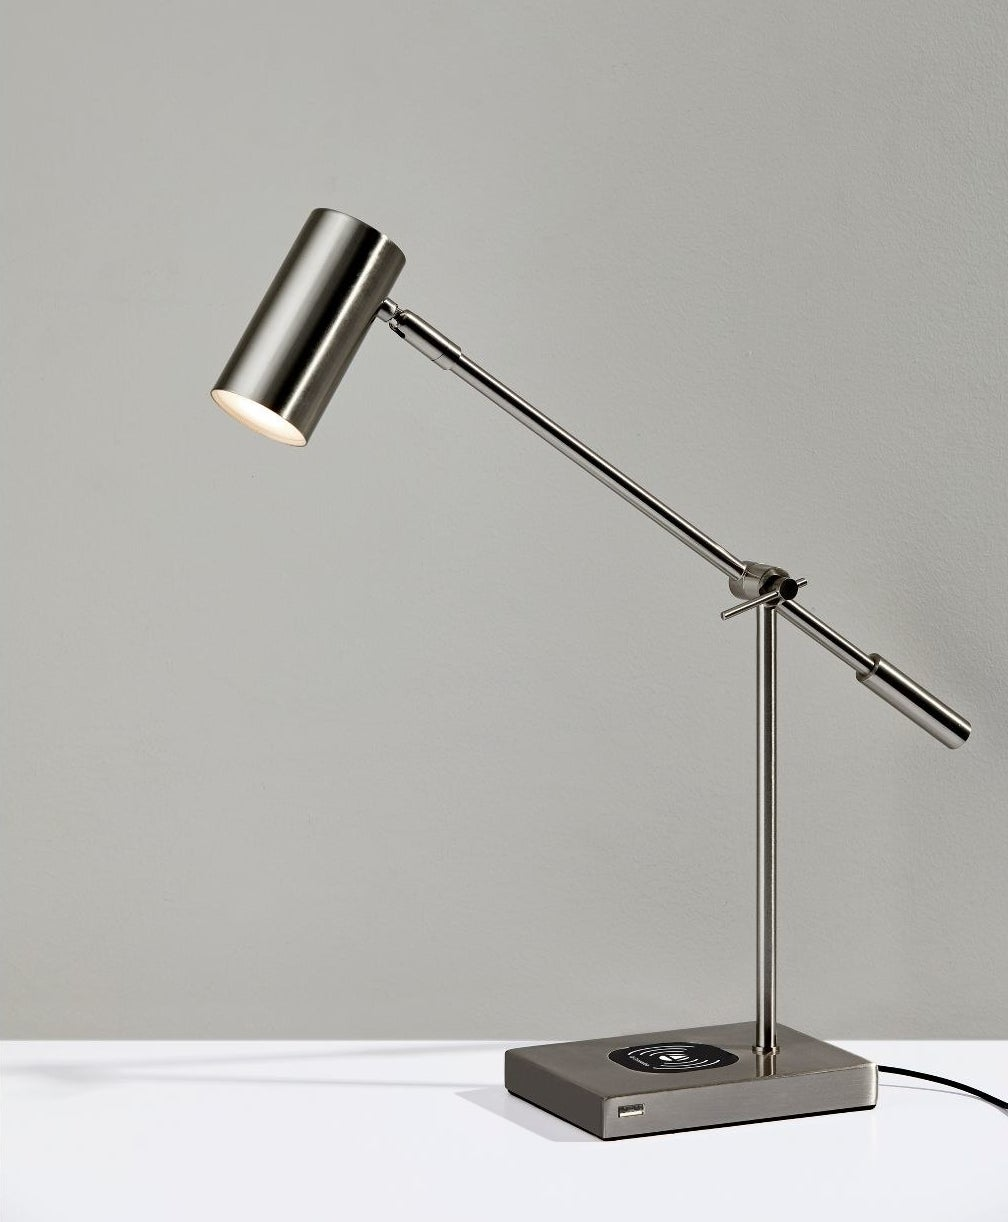 The lamp, which has an adjustable cylindrical head, an adjustable stick body, and a rectangular base with the charging station